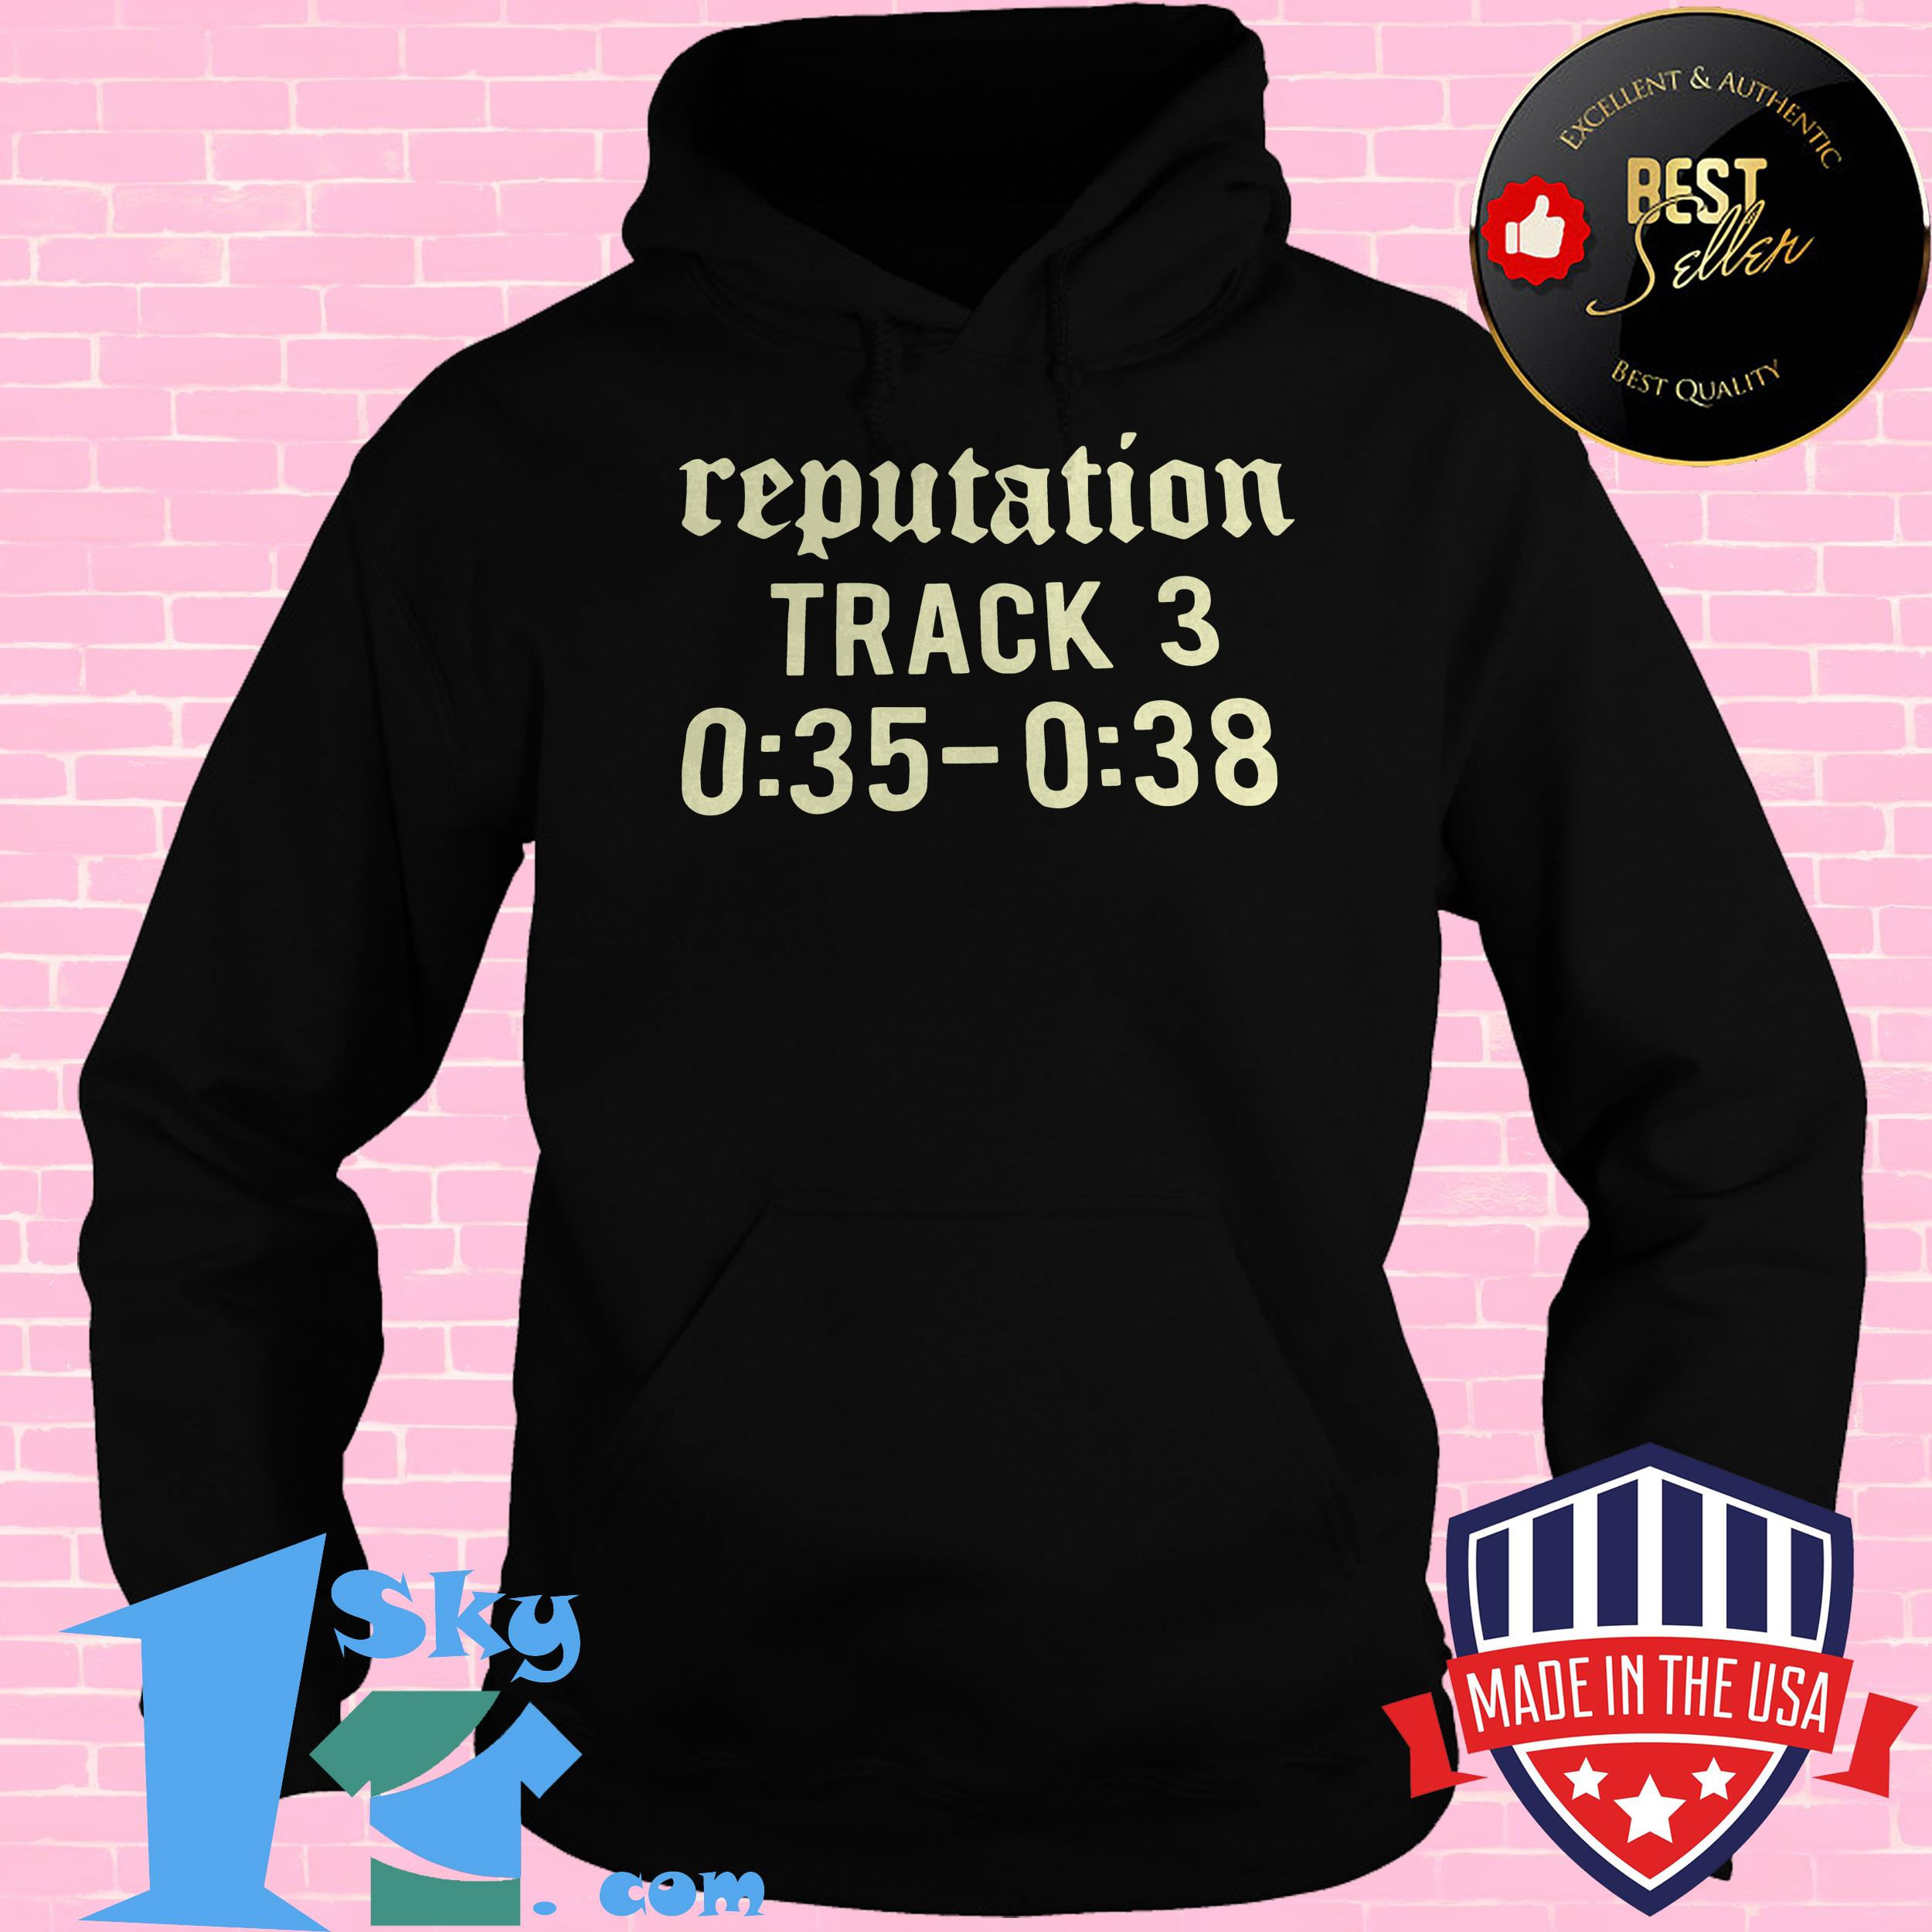 official reputation track 3 035 038 hoodie - Official Reputation Track 3 0:35-0:38 shirt